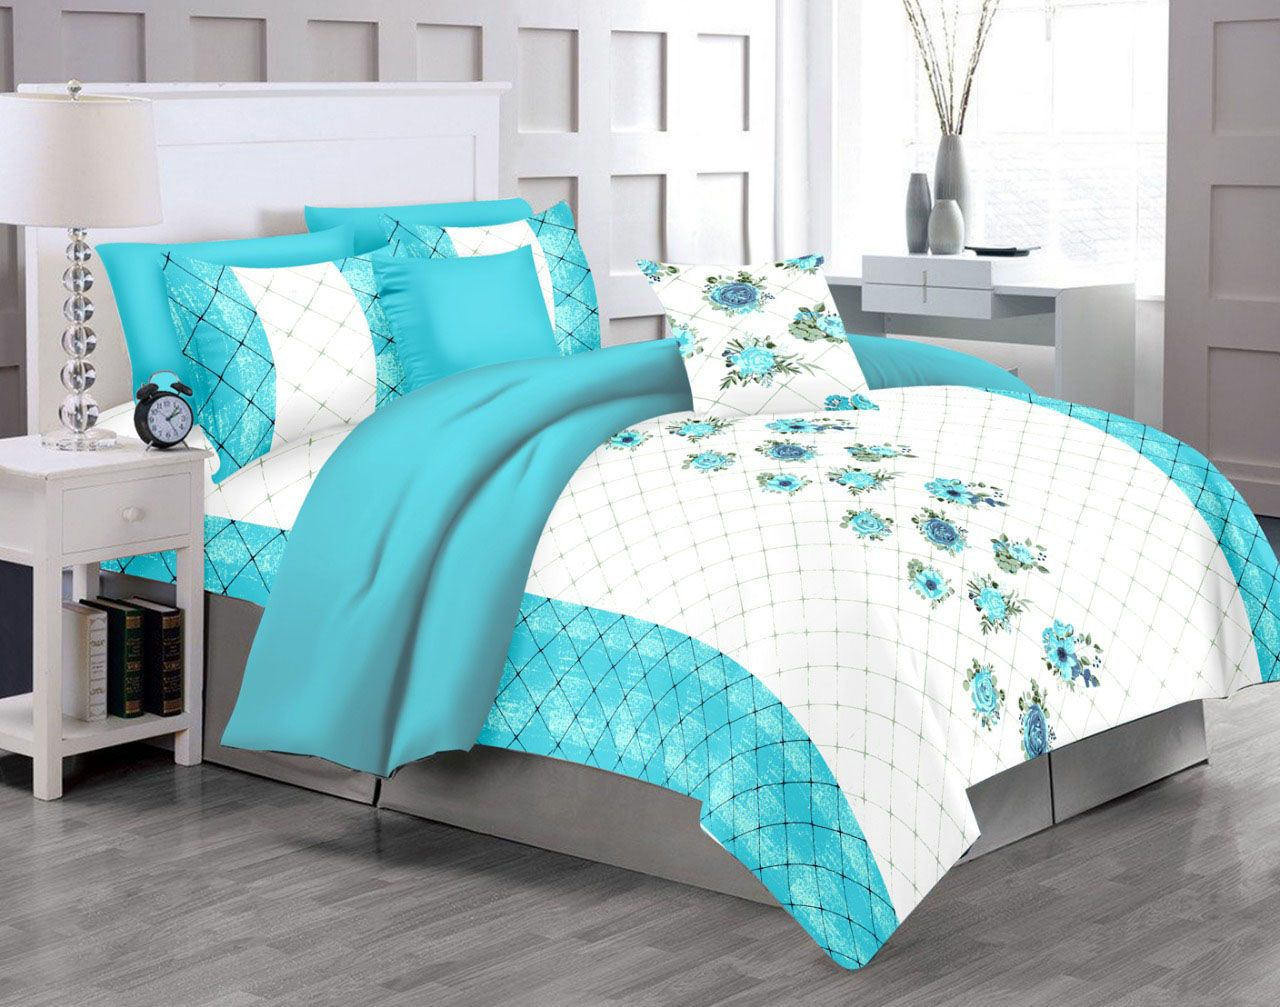 bedding suppliers in 2020 Wholesale bedding, Hotel bed